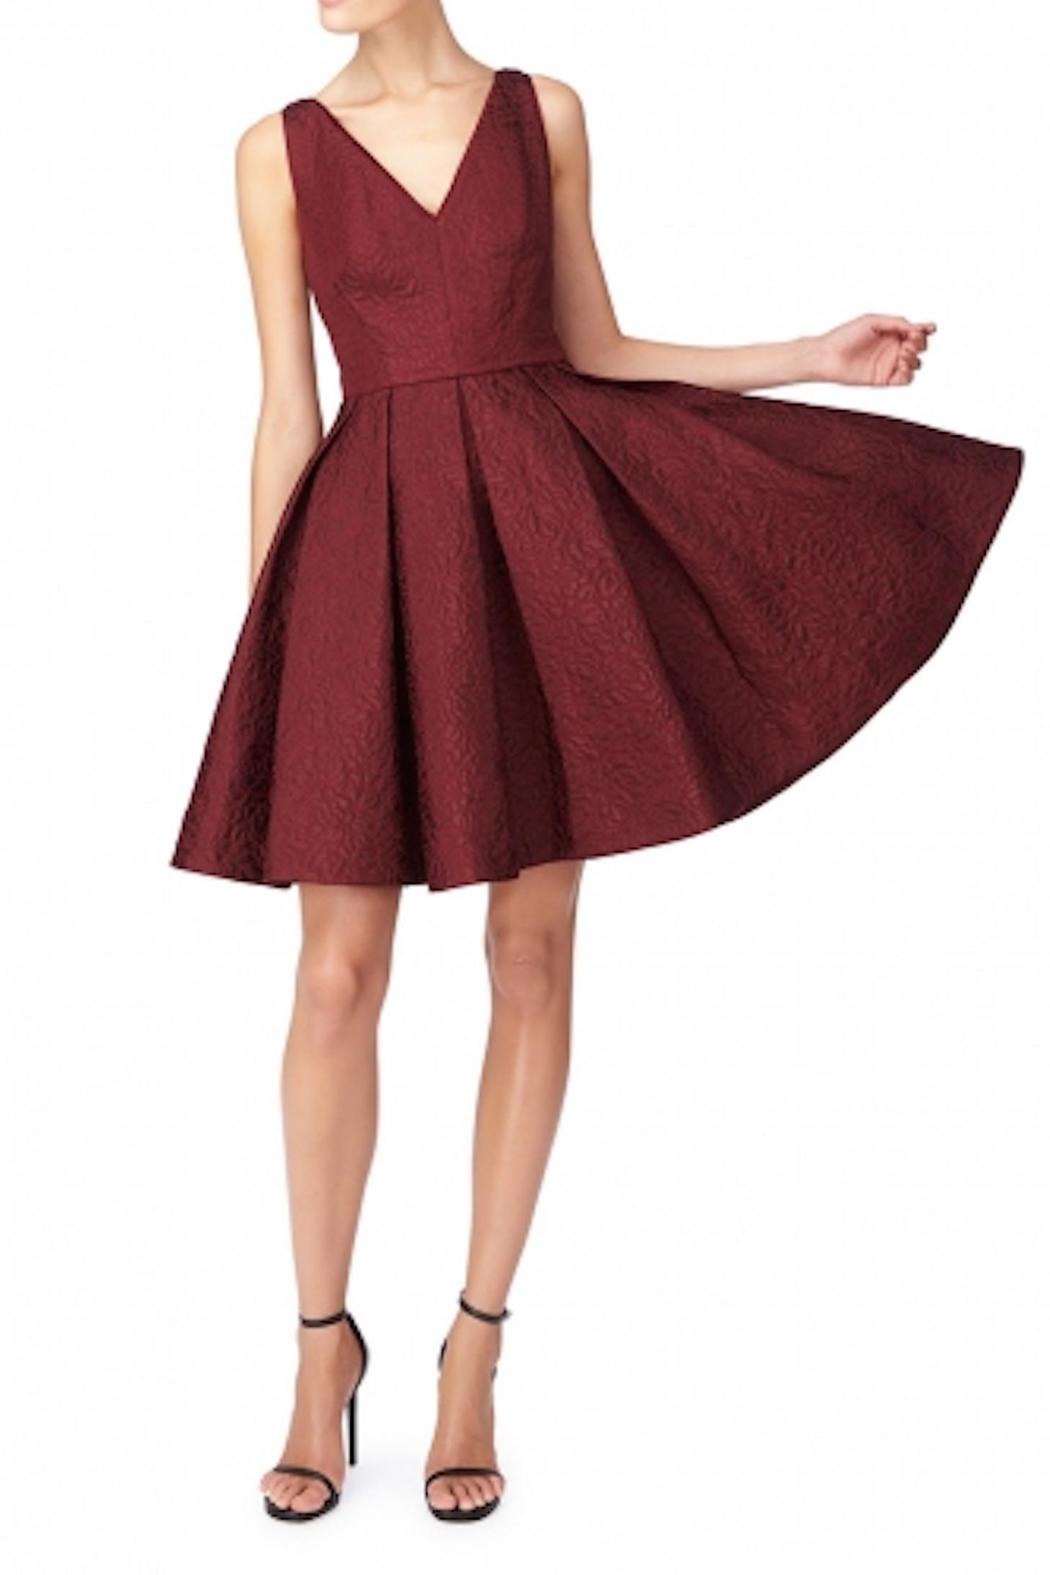 Erin Fetherston Coco Crimson Dress - Front Full Image